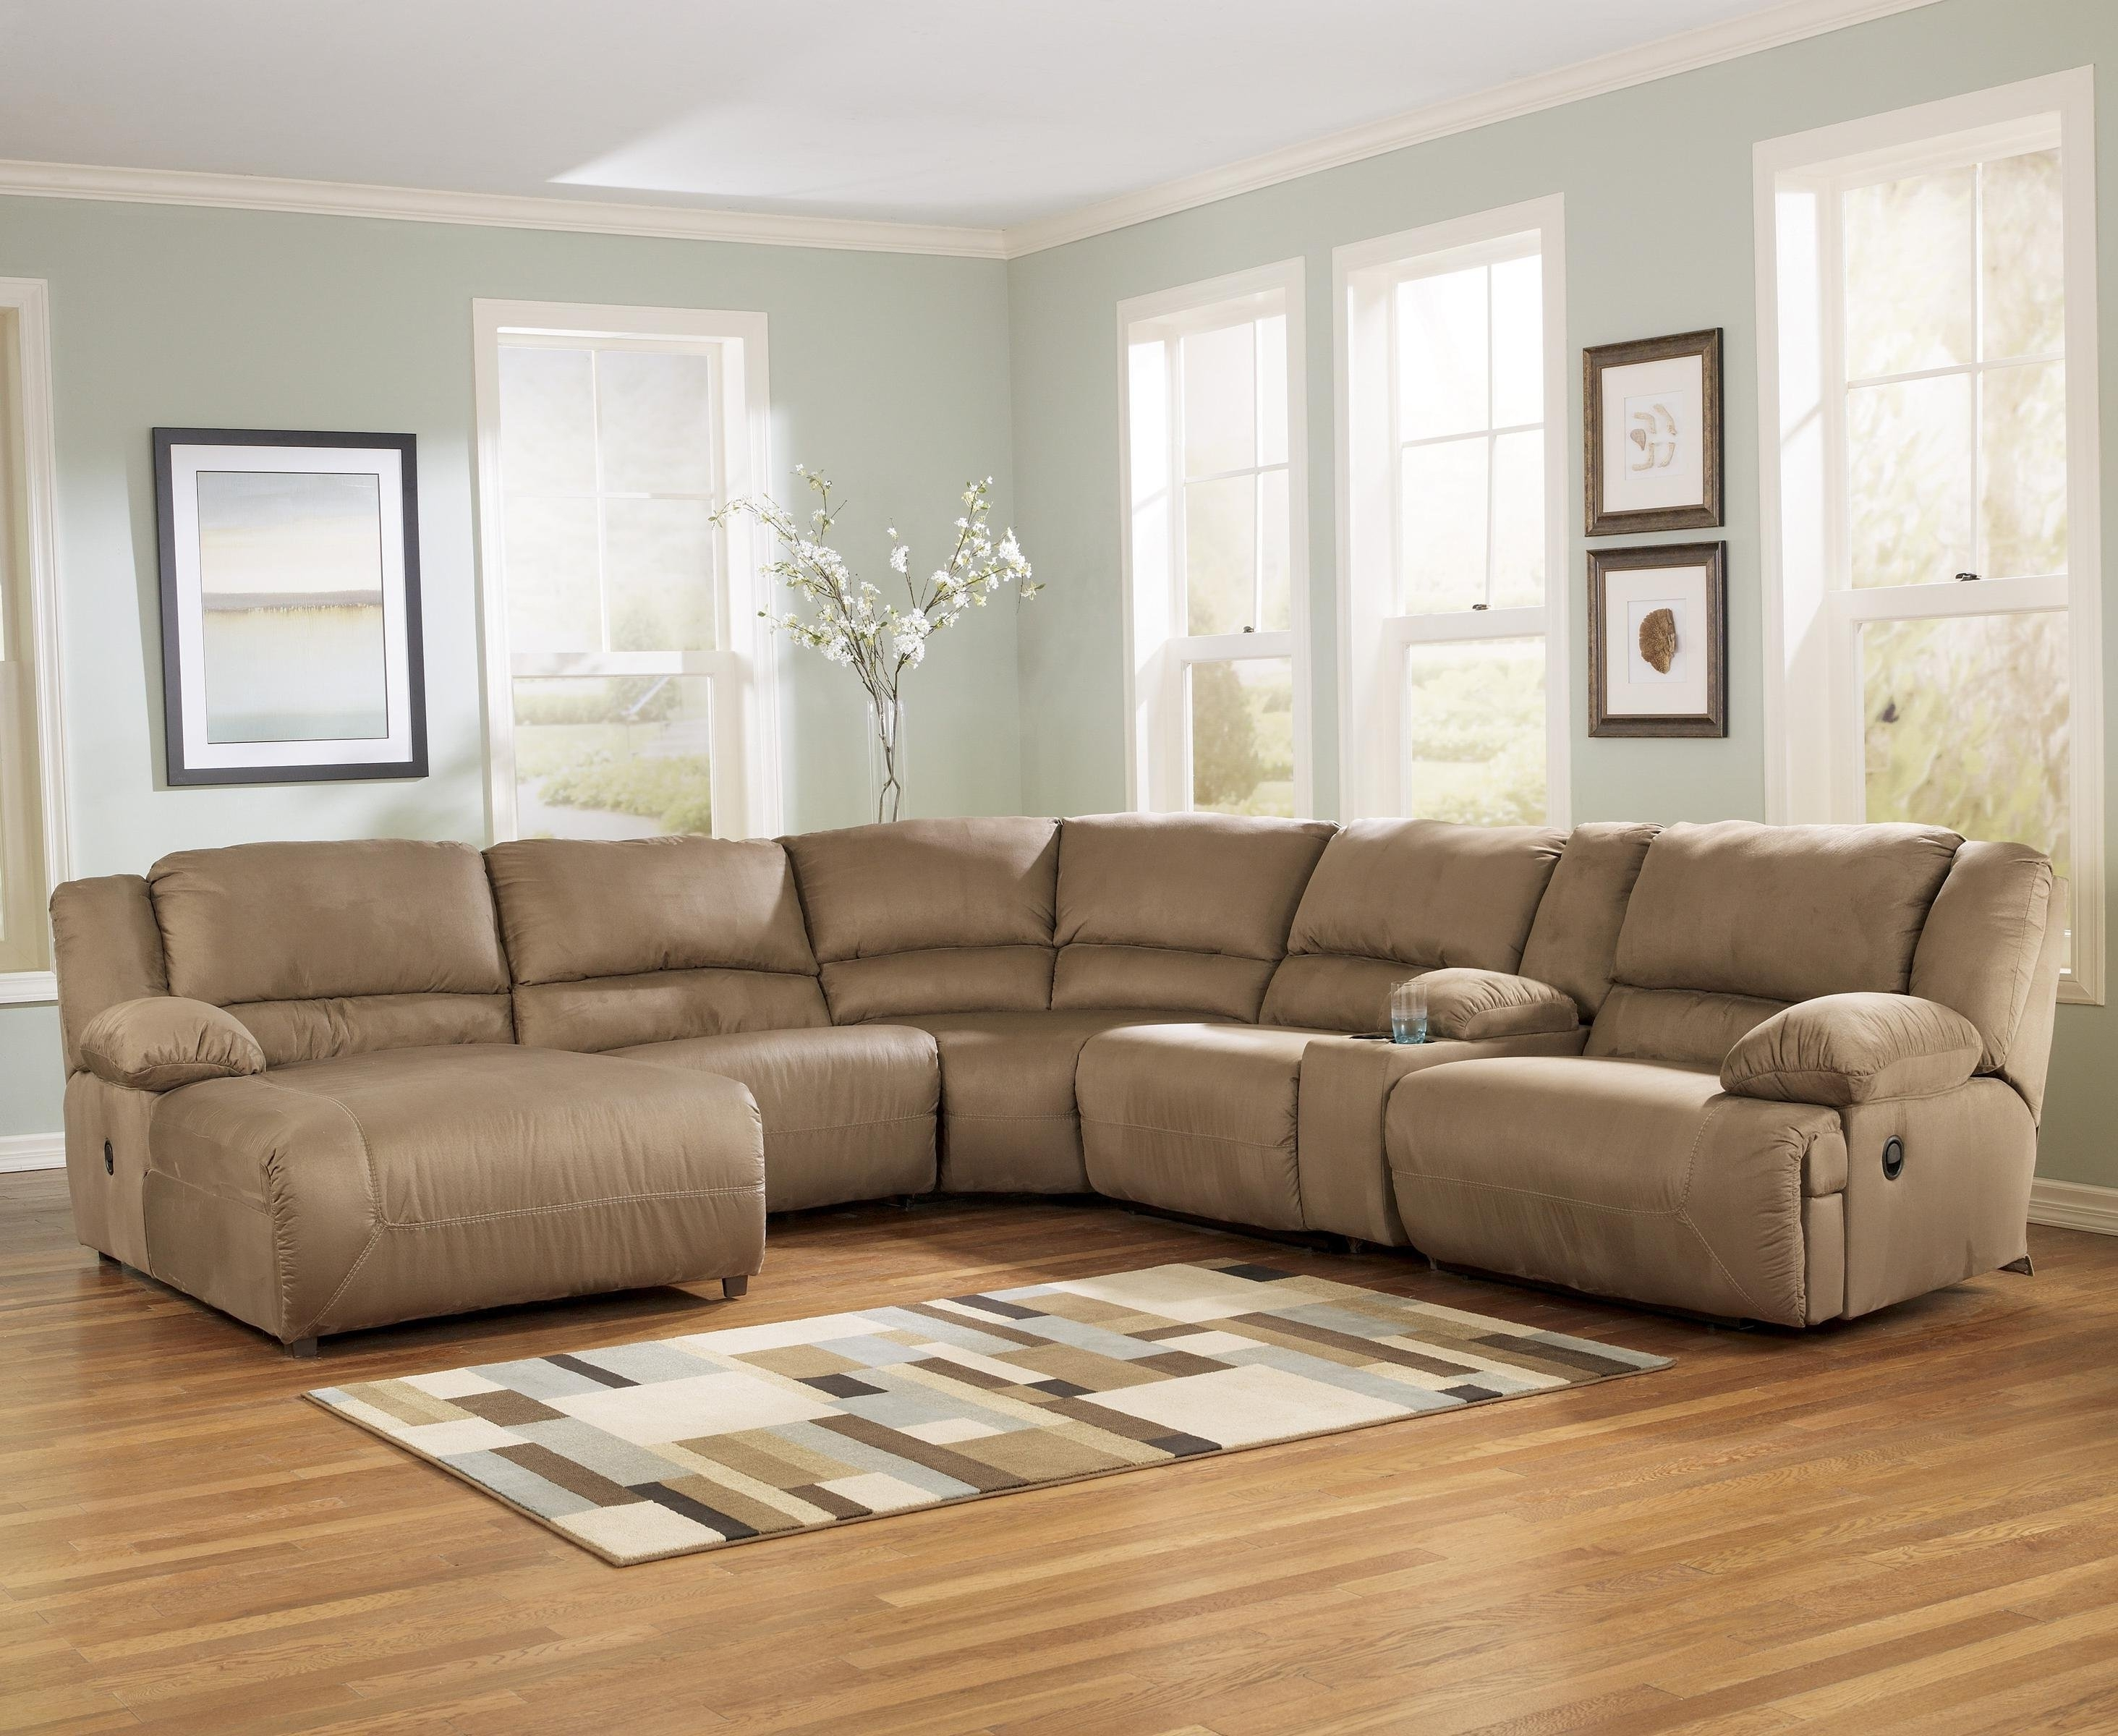 Fabulous 25 Power Reclining Sectional Sofa Favorite With Calder Grey 6 Piece Manual Reclining Sectionals (View 24 of 25)